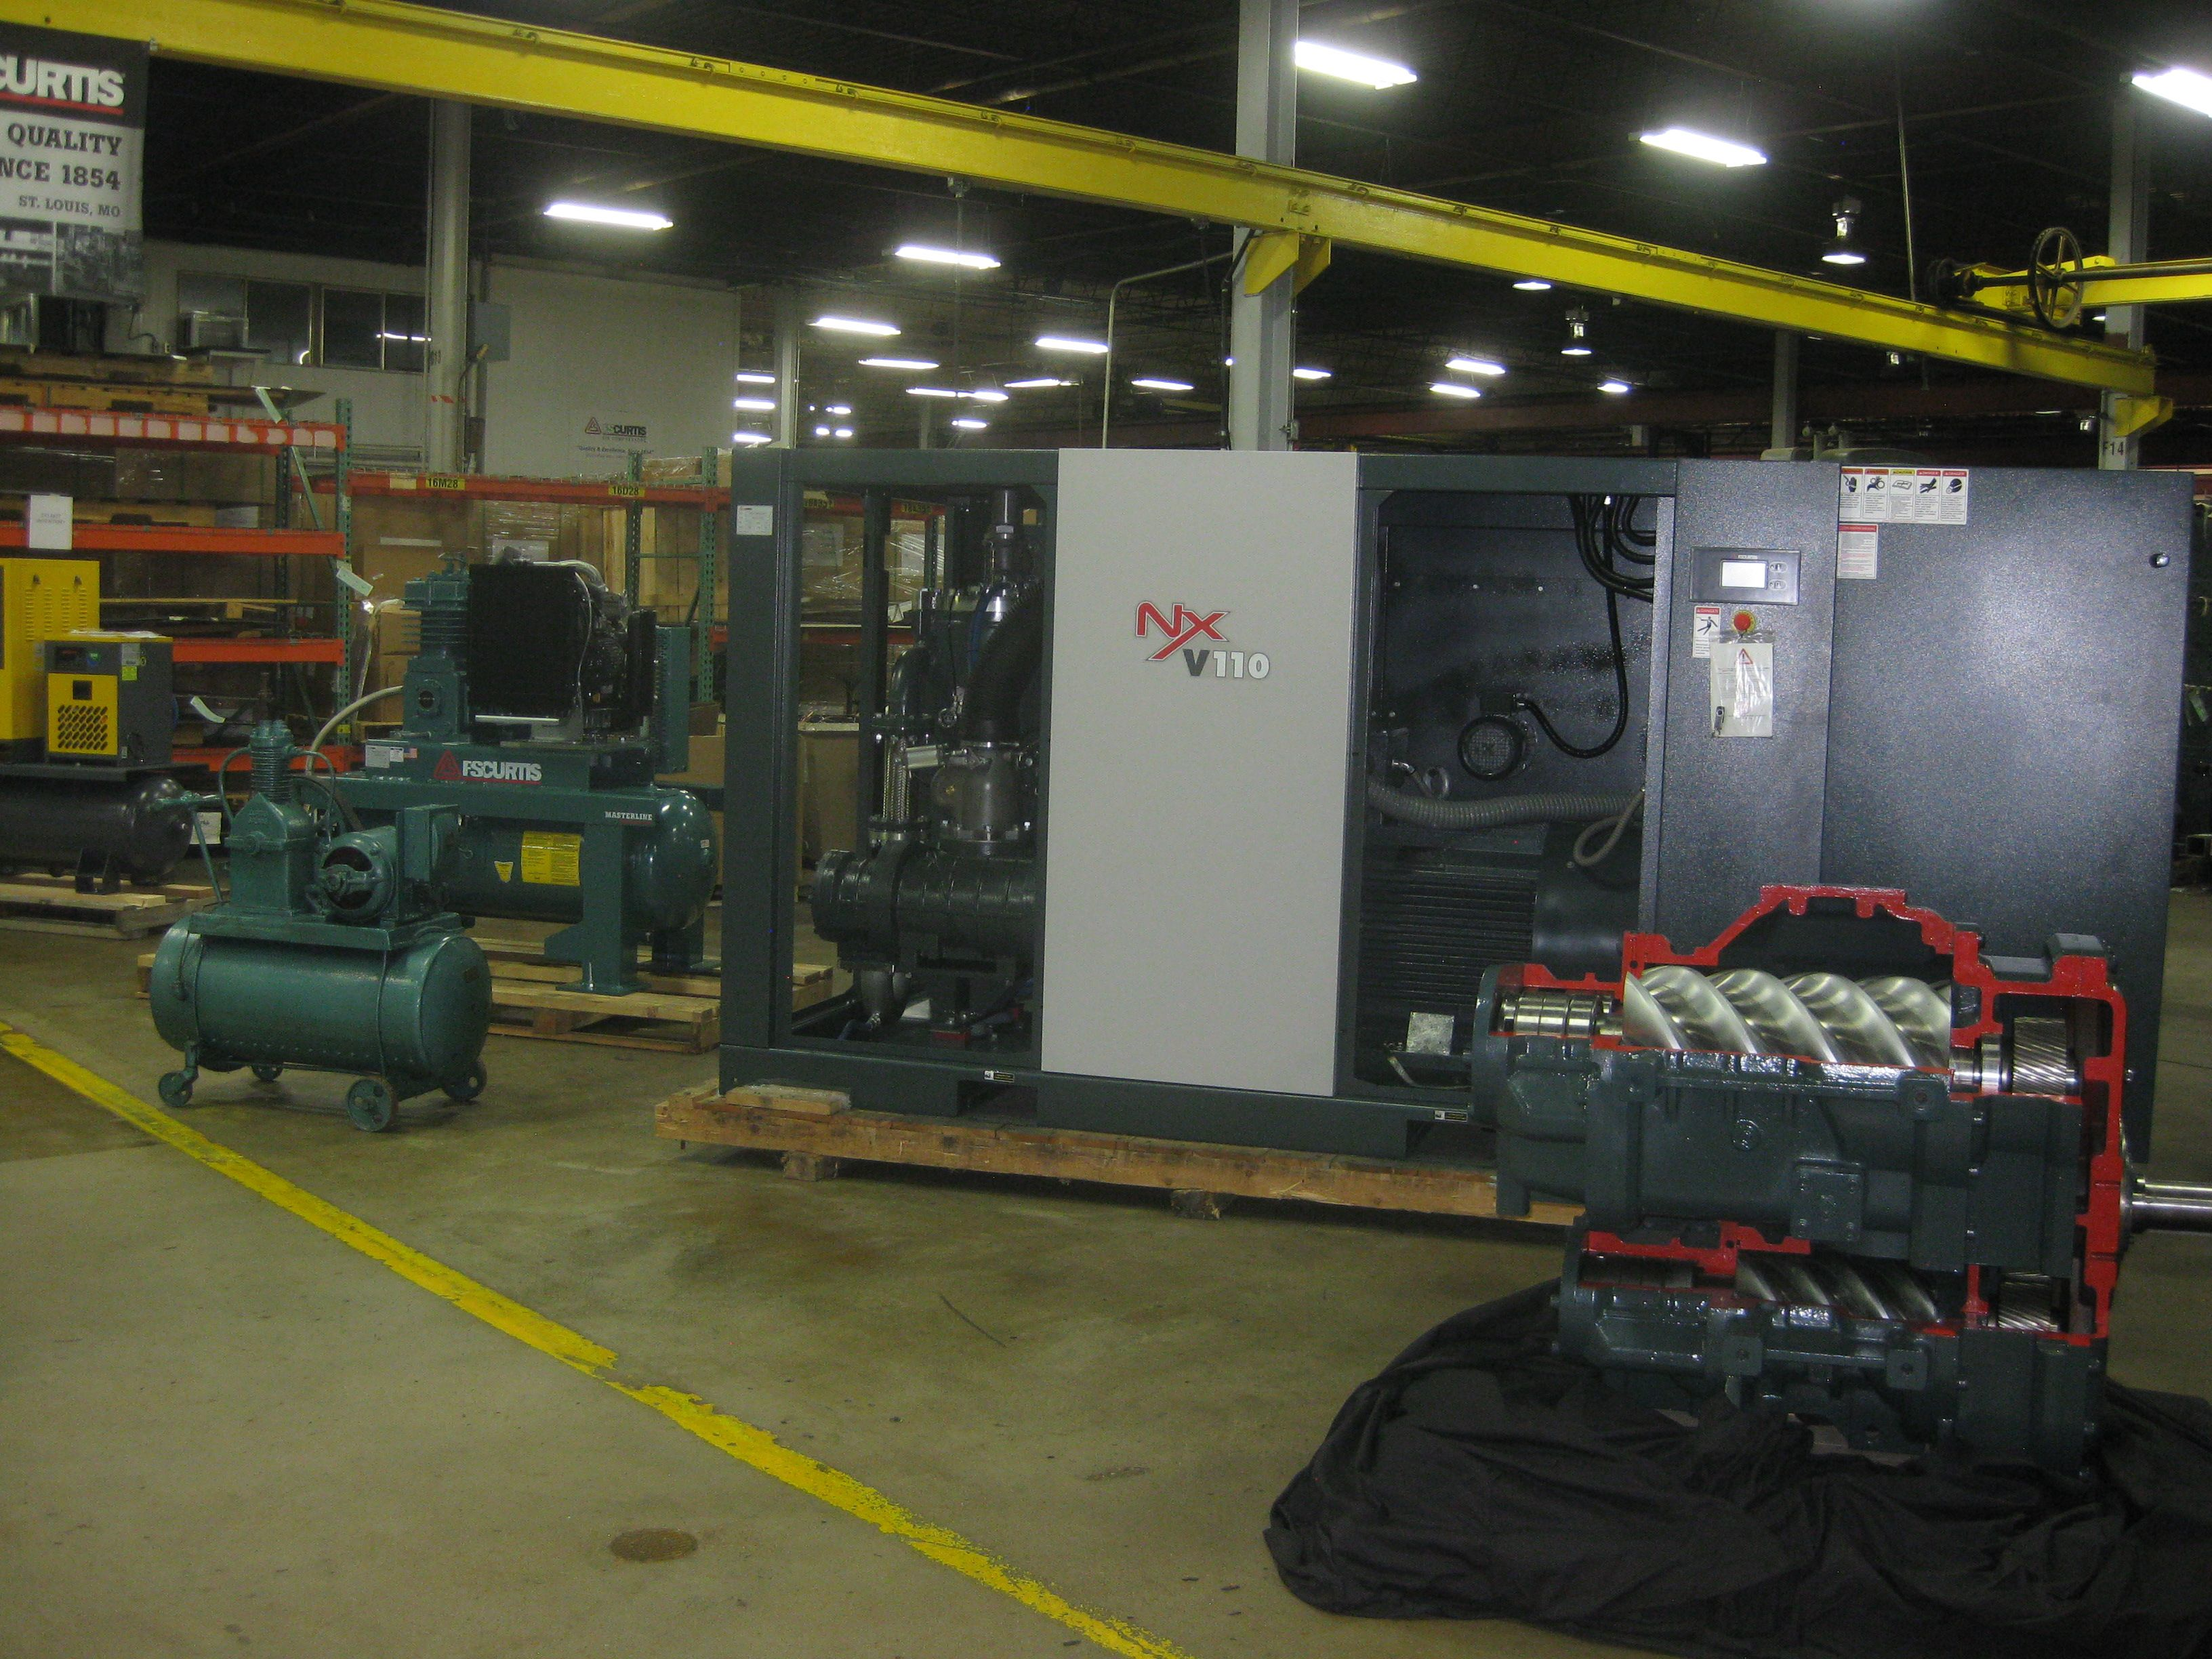 ROTARY SCREW COMPRESSORS, ROTARY COMPRESSORS, AIR